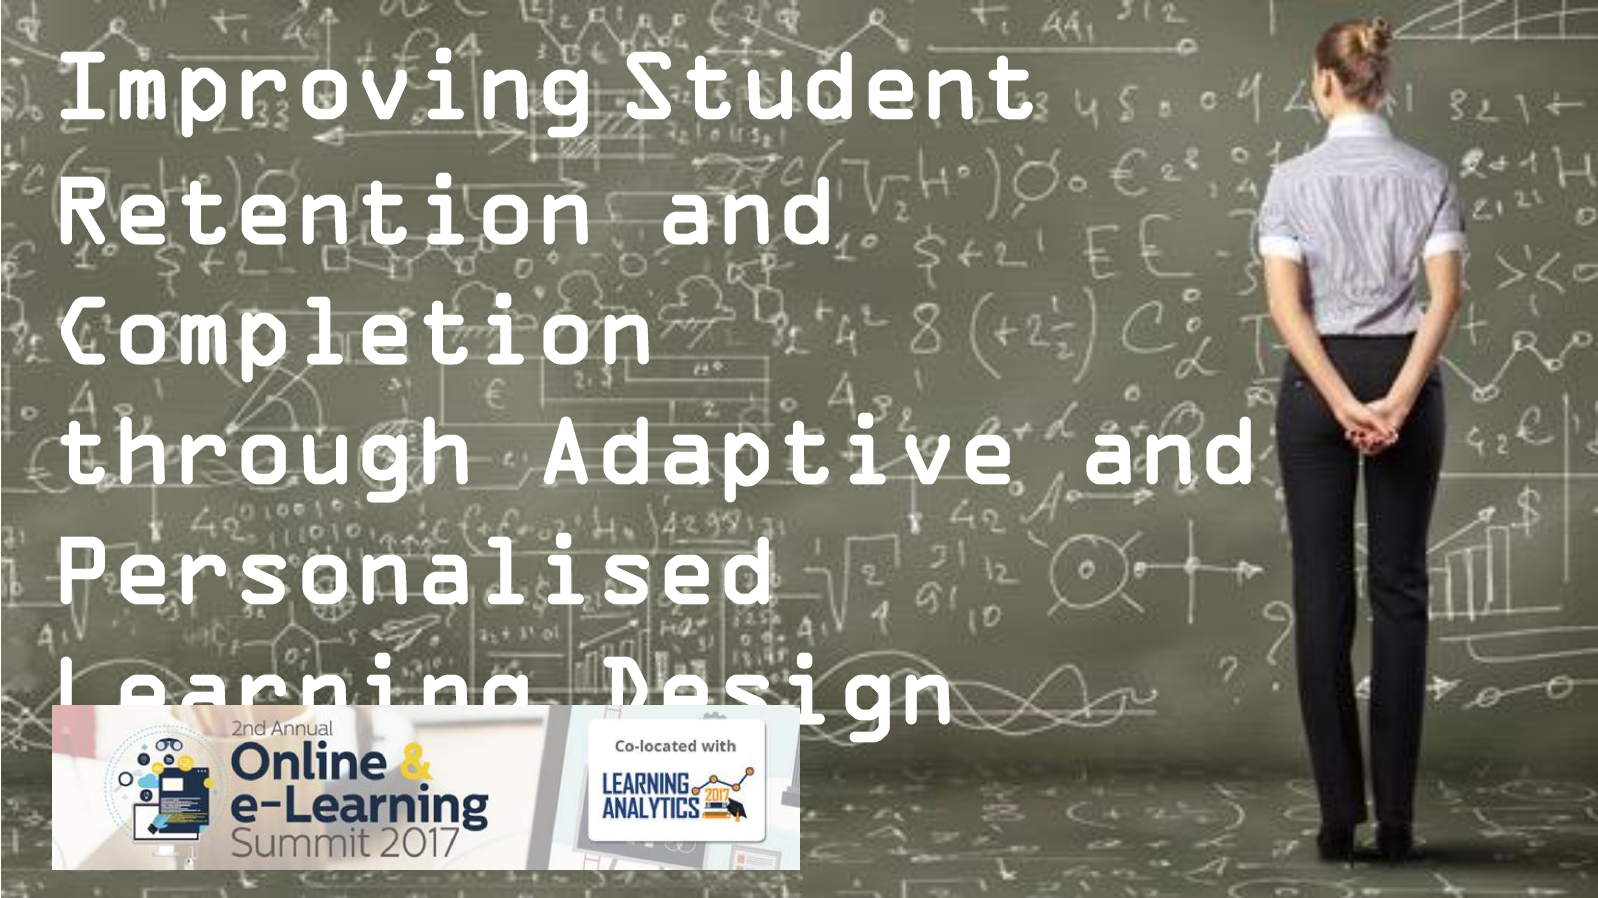 Improving Student Retention and Completion through Adaptive and Personalized Learning Design